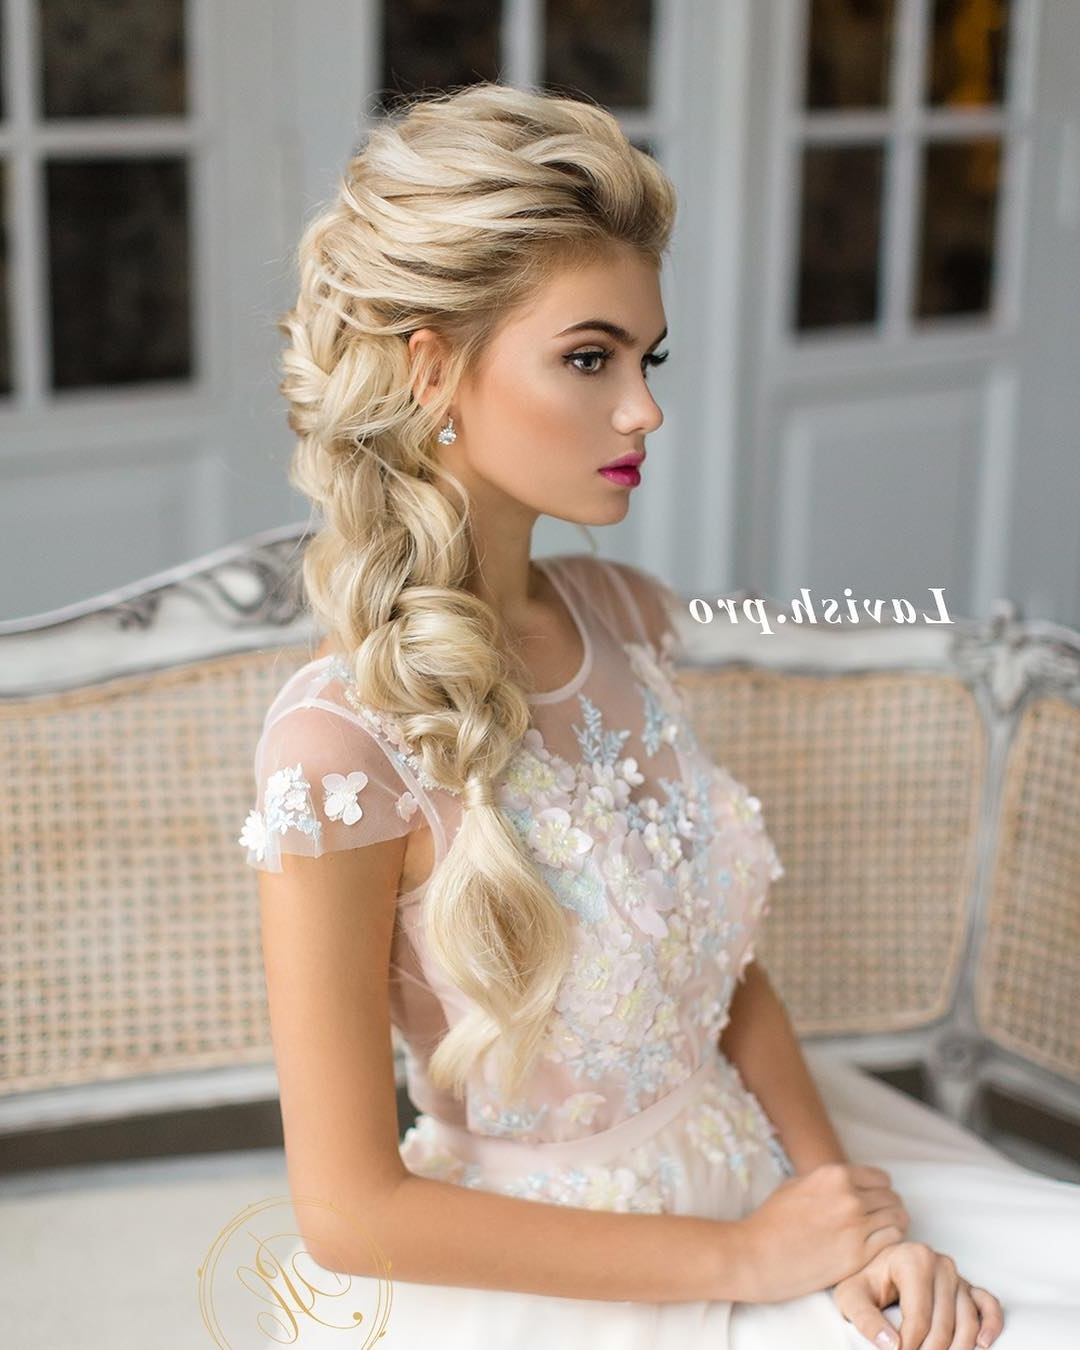 10 Lavish Wedding Hairstyles For Long Hair – Wedding Hairstyle Ideas Pertaining To Bride Updo Hairstyles (View 14 of 15)